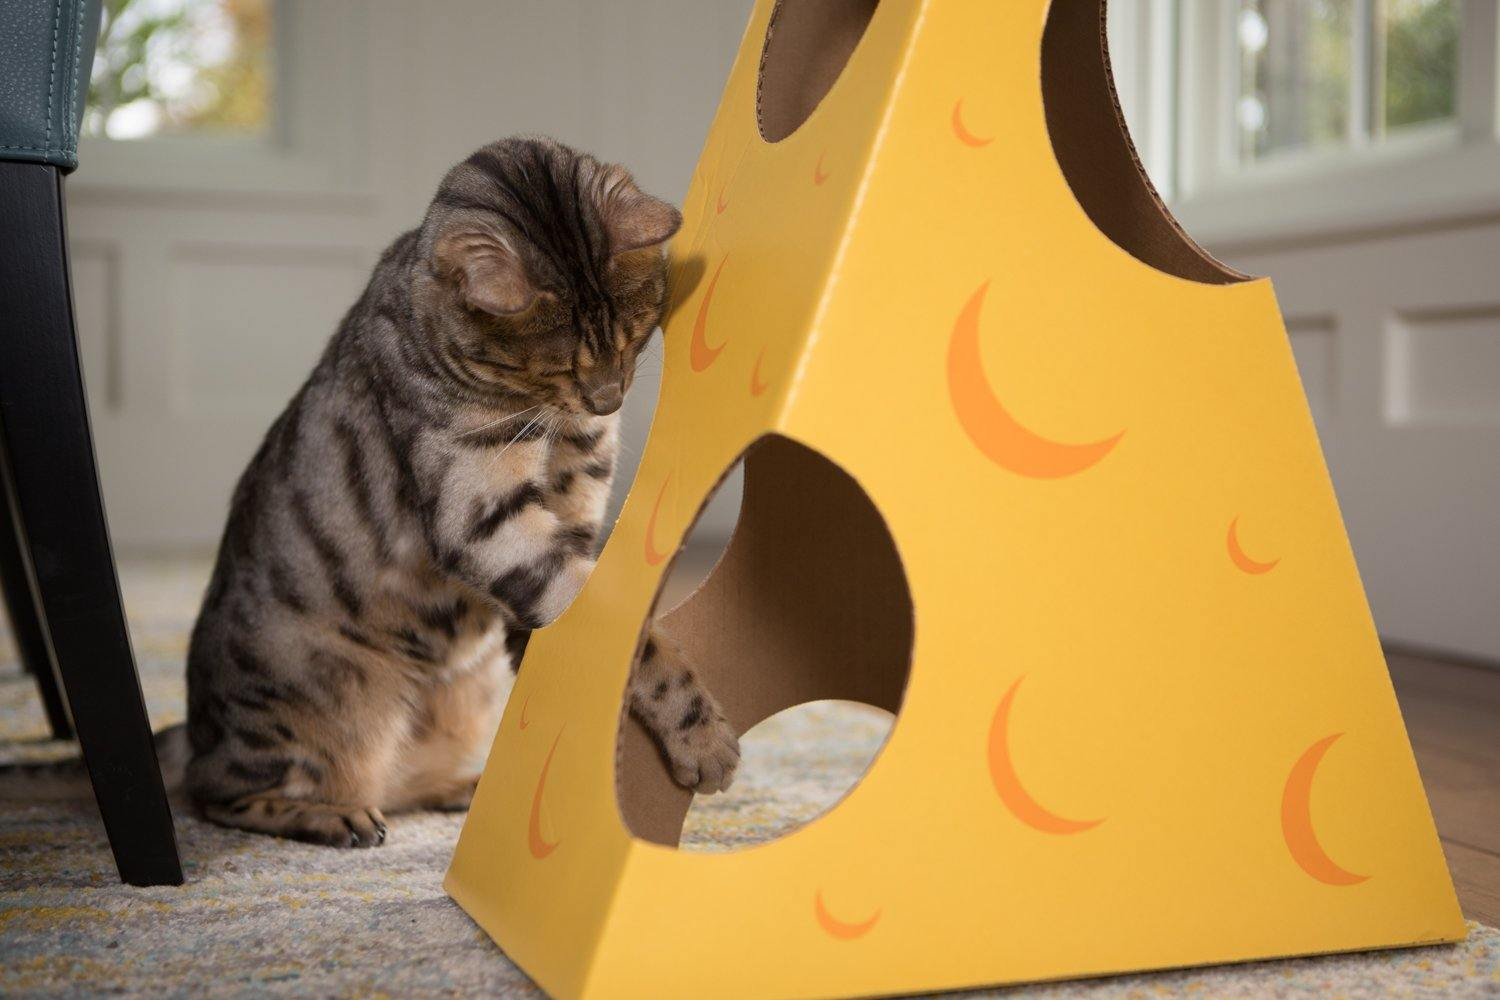 A Bengal cat playing in the Monster Cheese Wedge cardboard box toy house